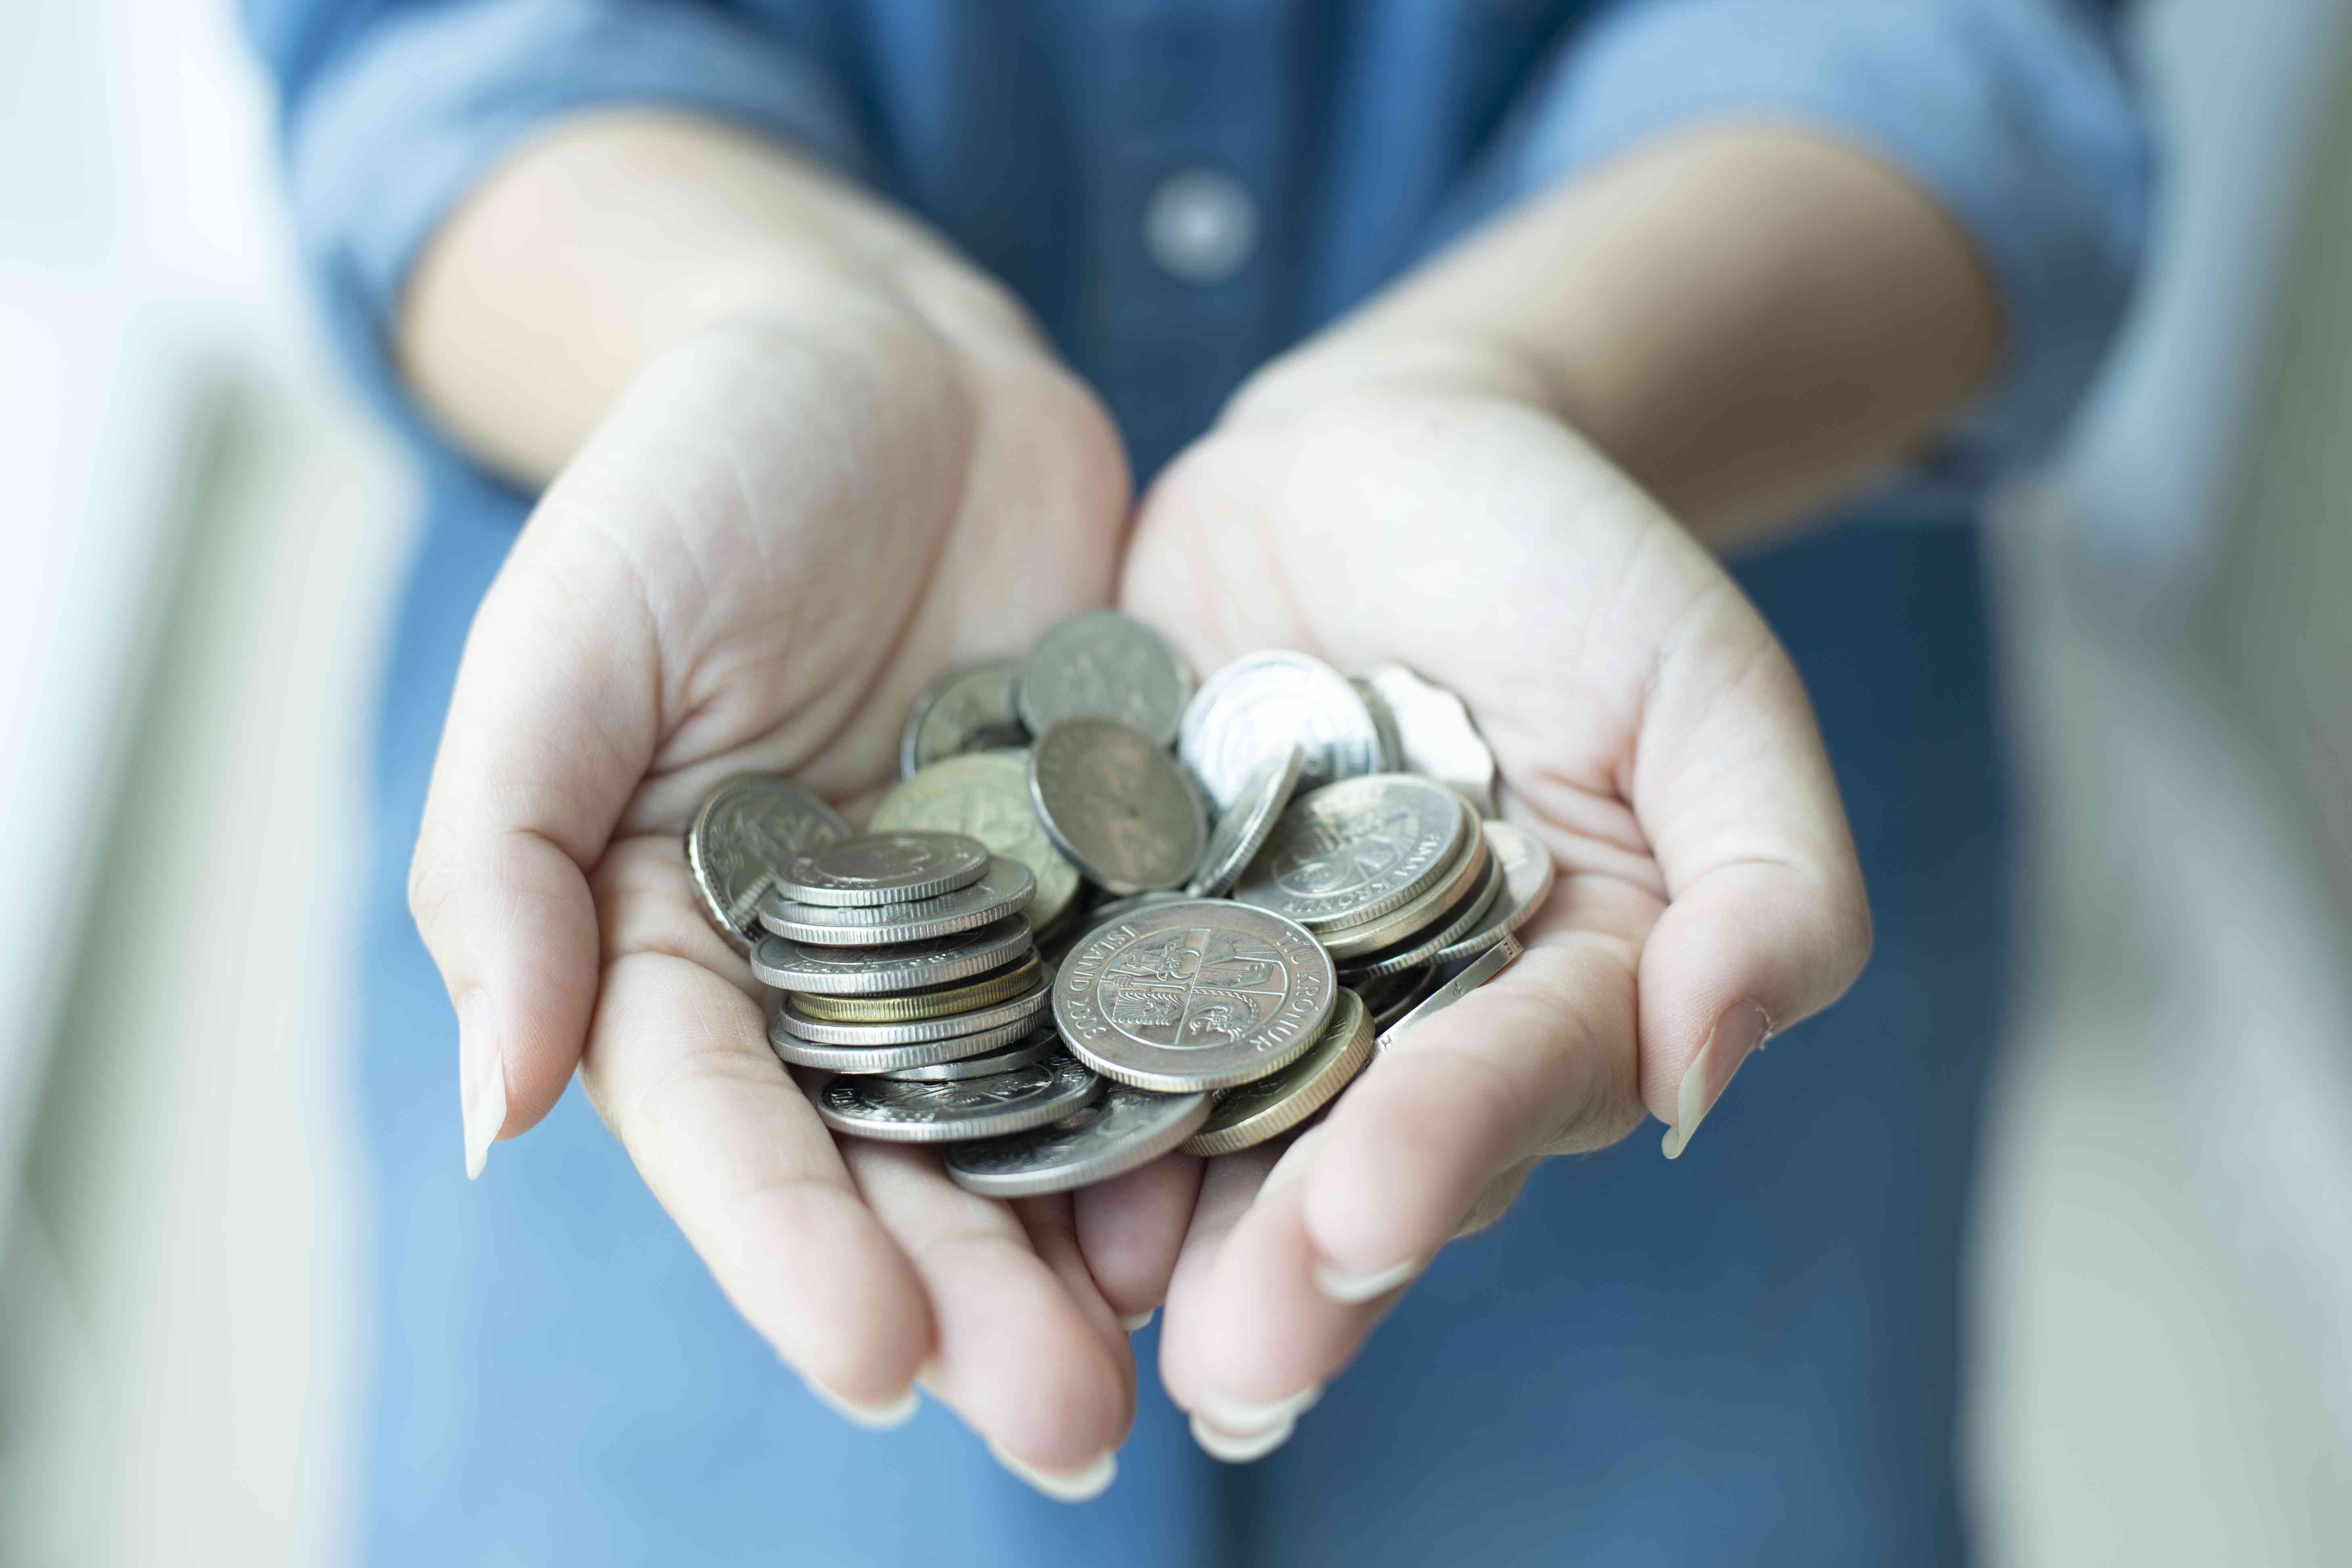 Woman with cupped hands holding coins